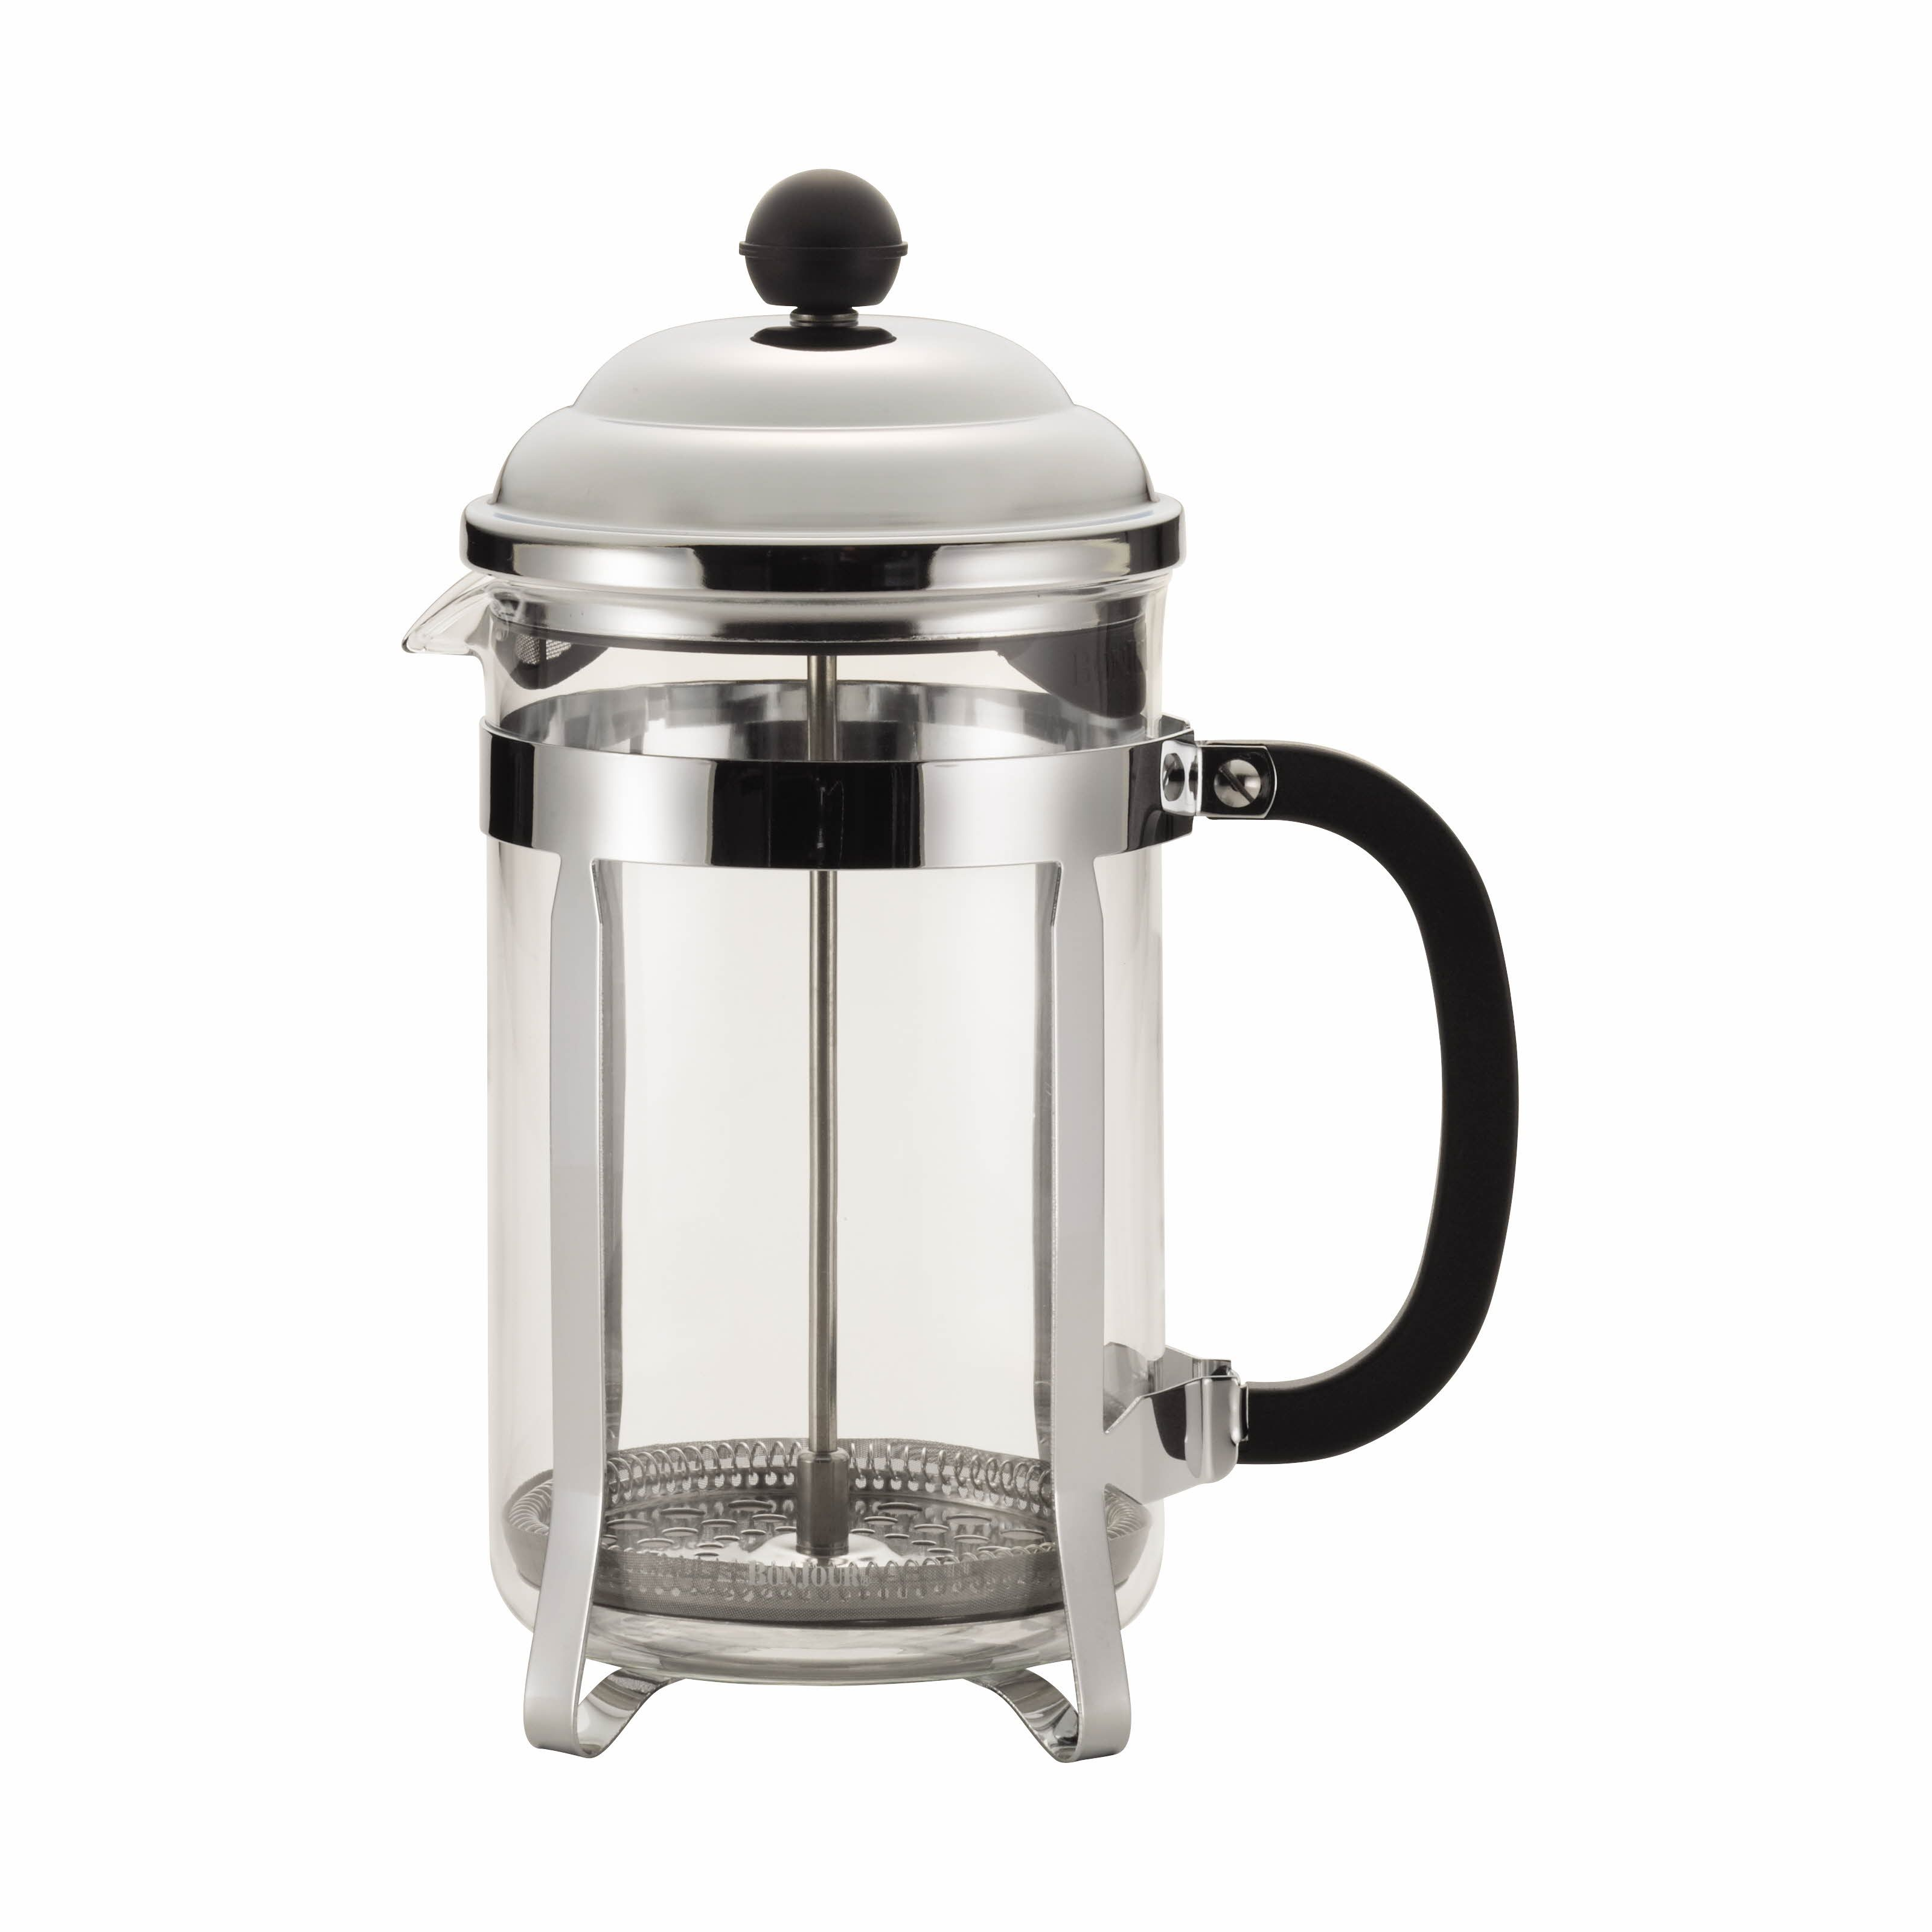 BonJour Bijoux vintagestyle French press Stainless